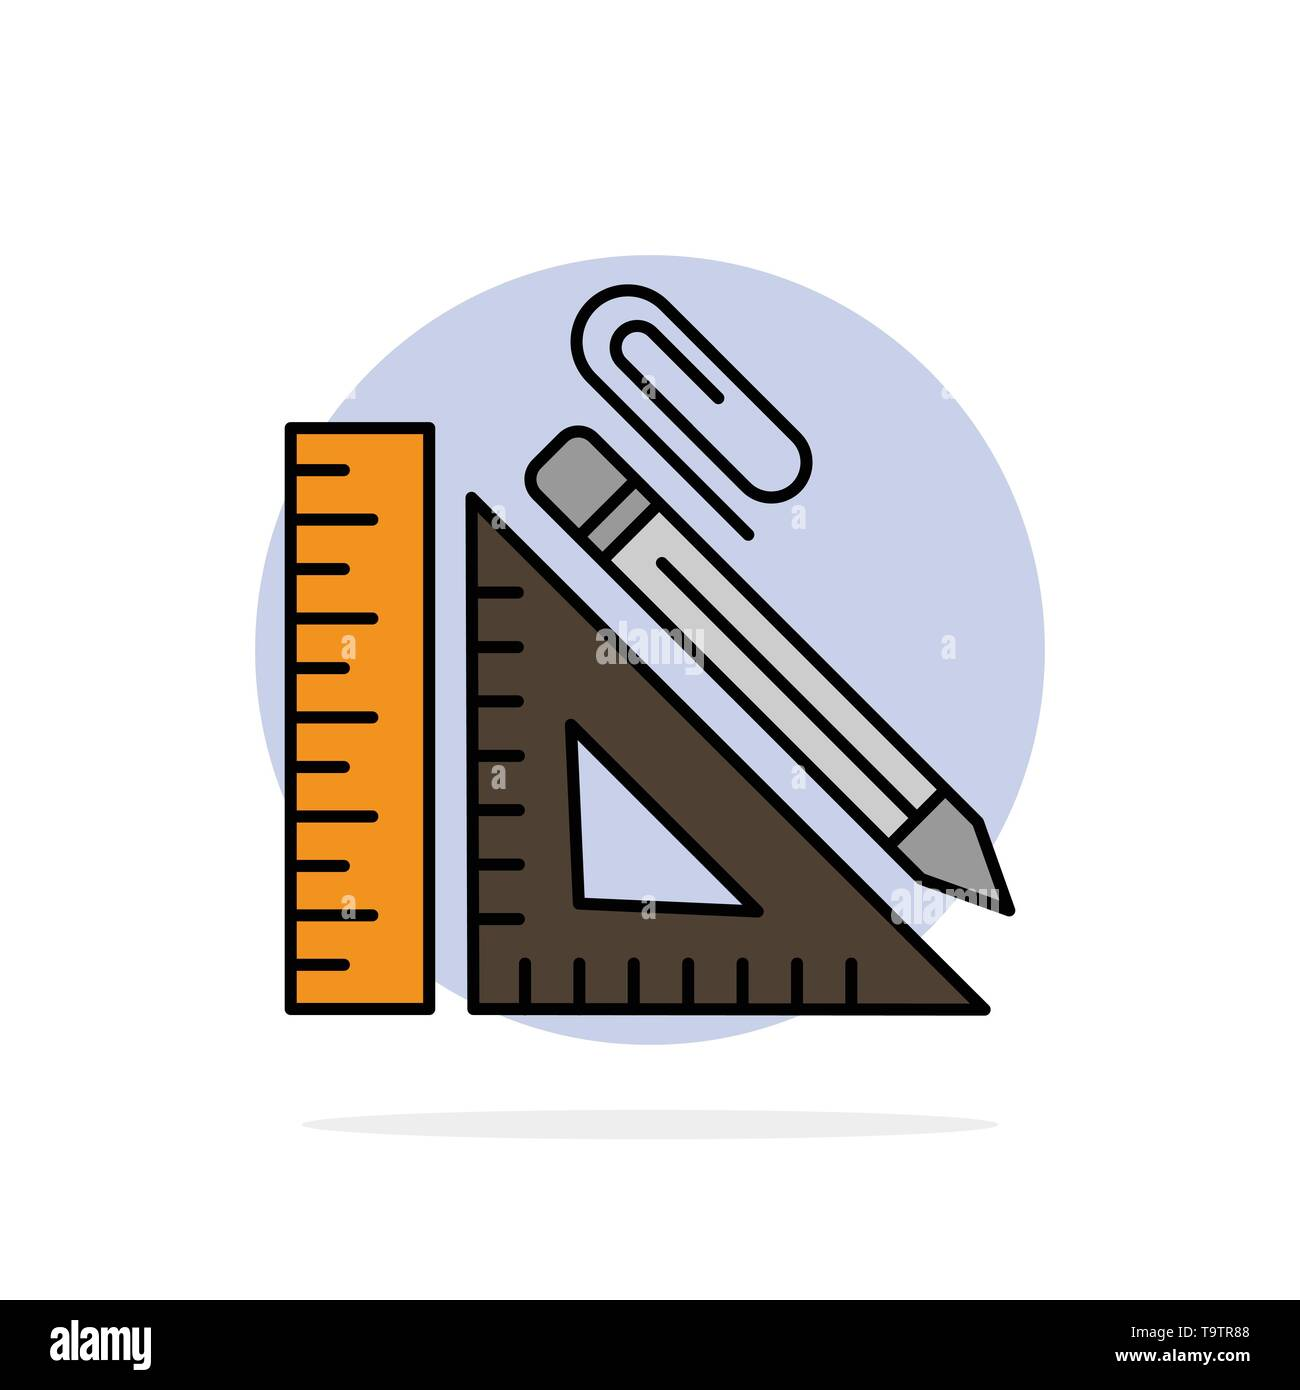 Scale, Construction, Pencil, Repair, Ruler, Clip Abstract Circle Background Flat color Icon - Stock Image